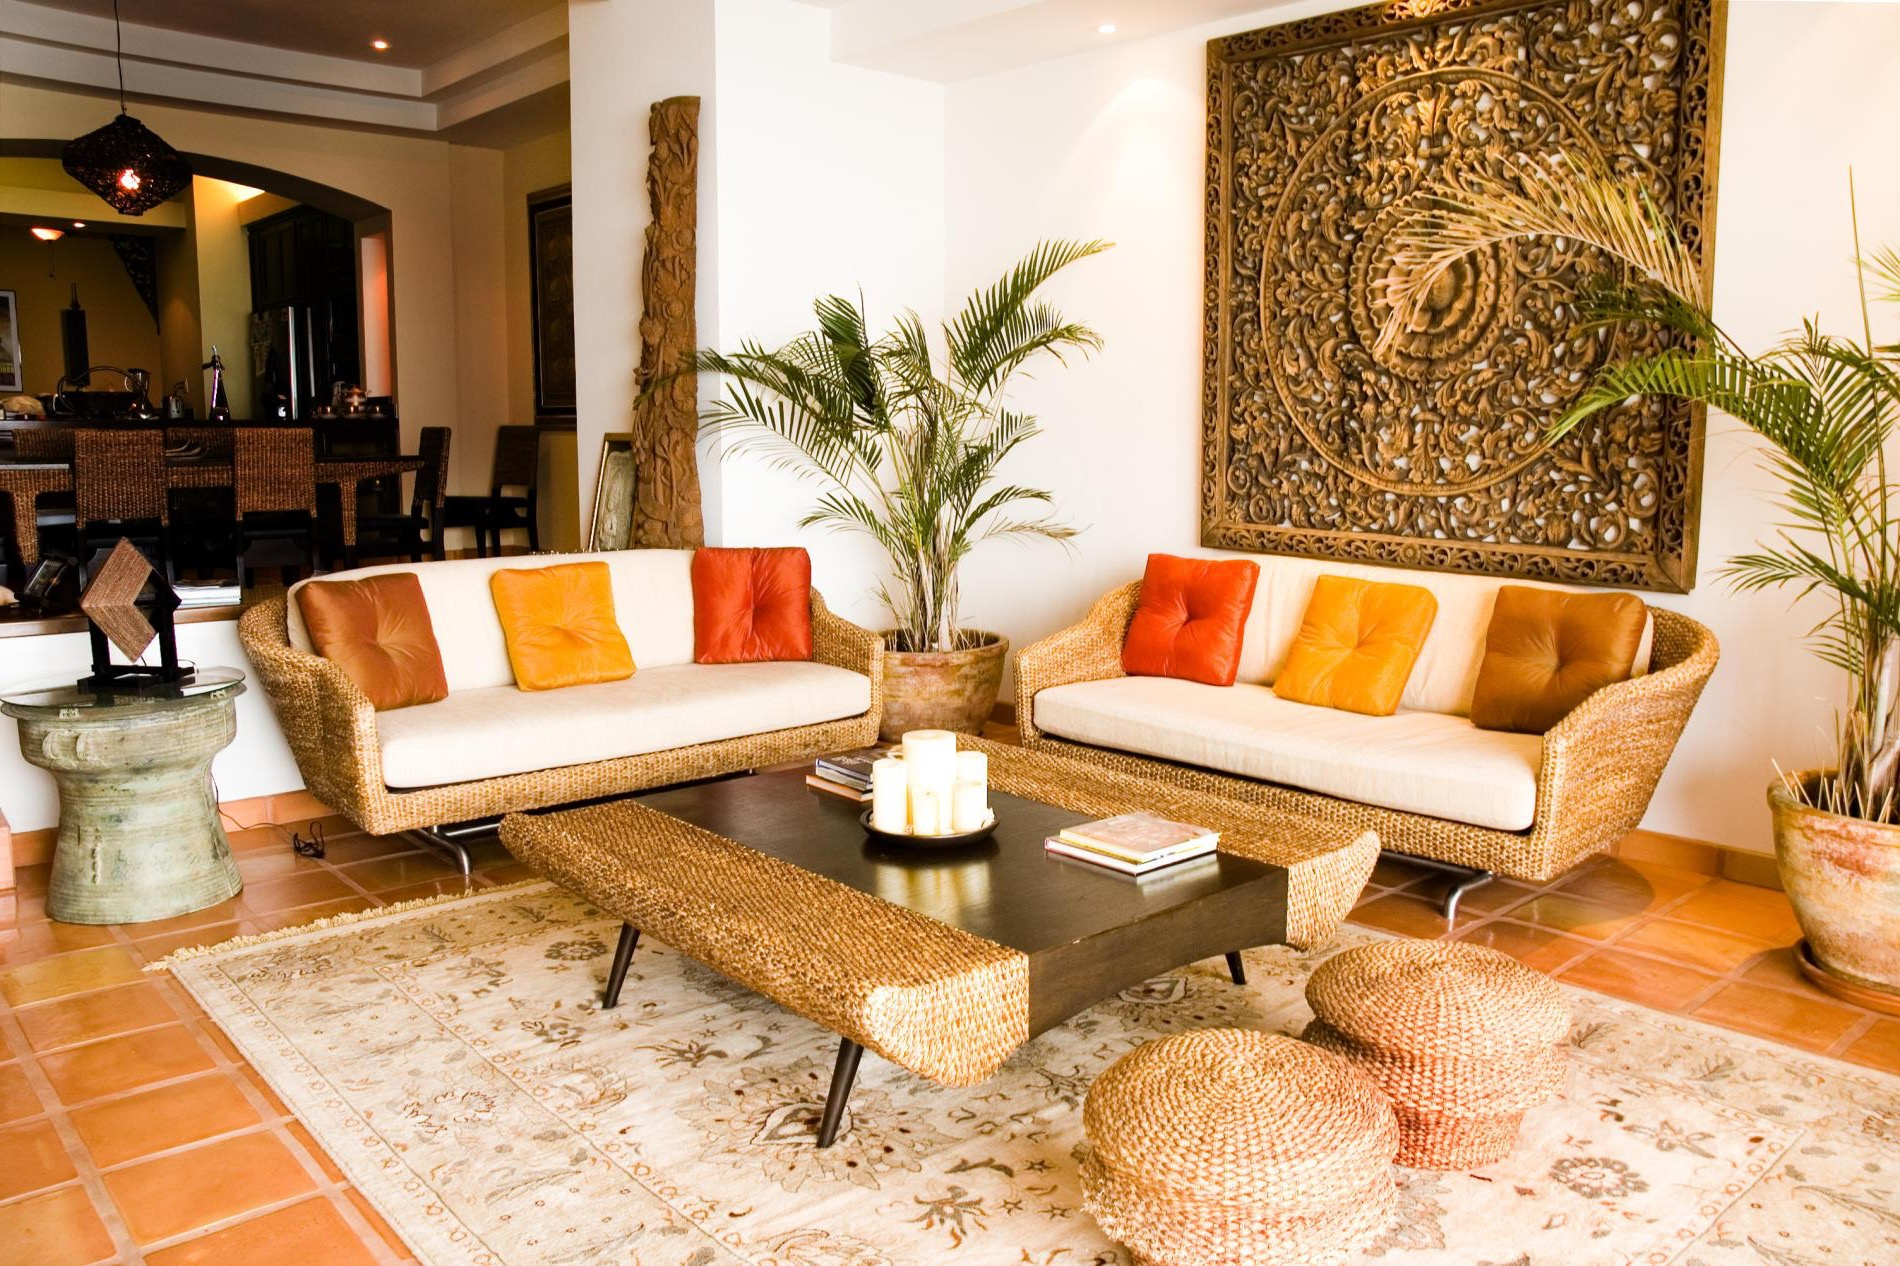 indian living room interior decoration #14401 | living room ideas